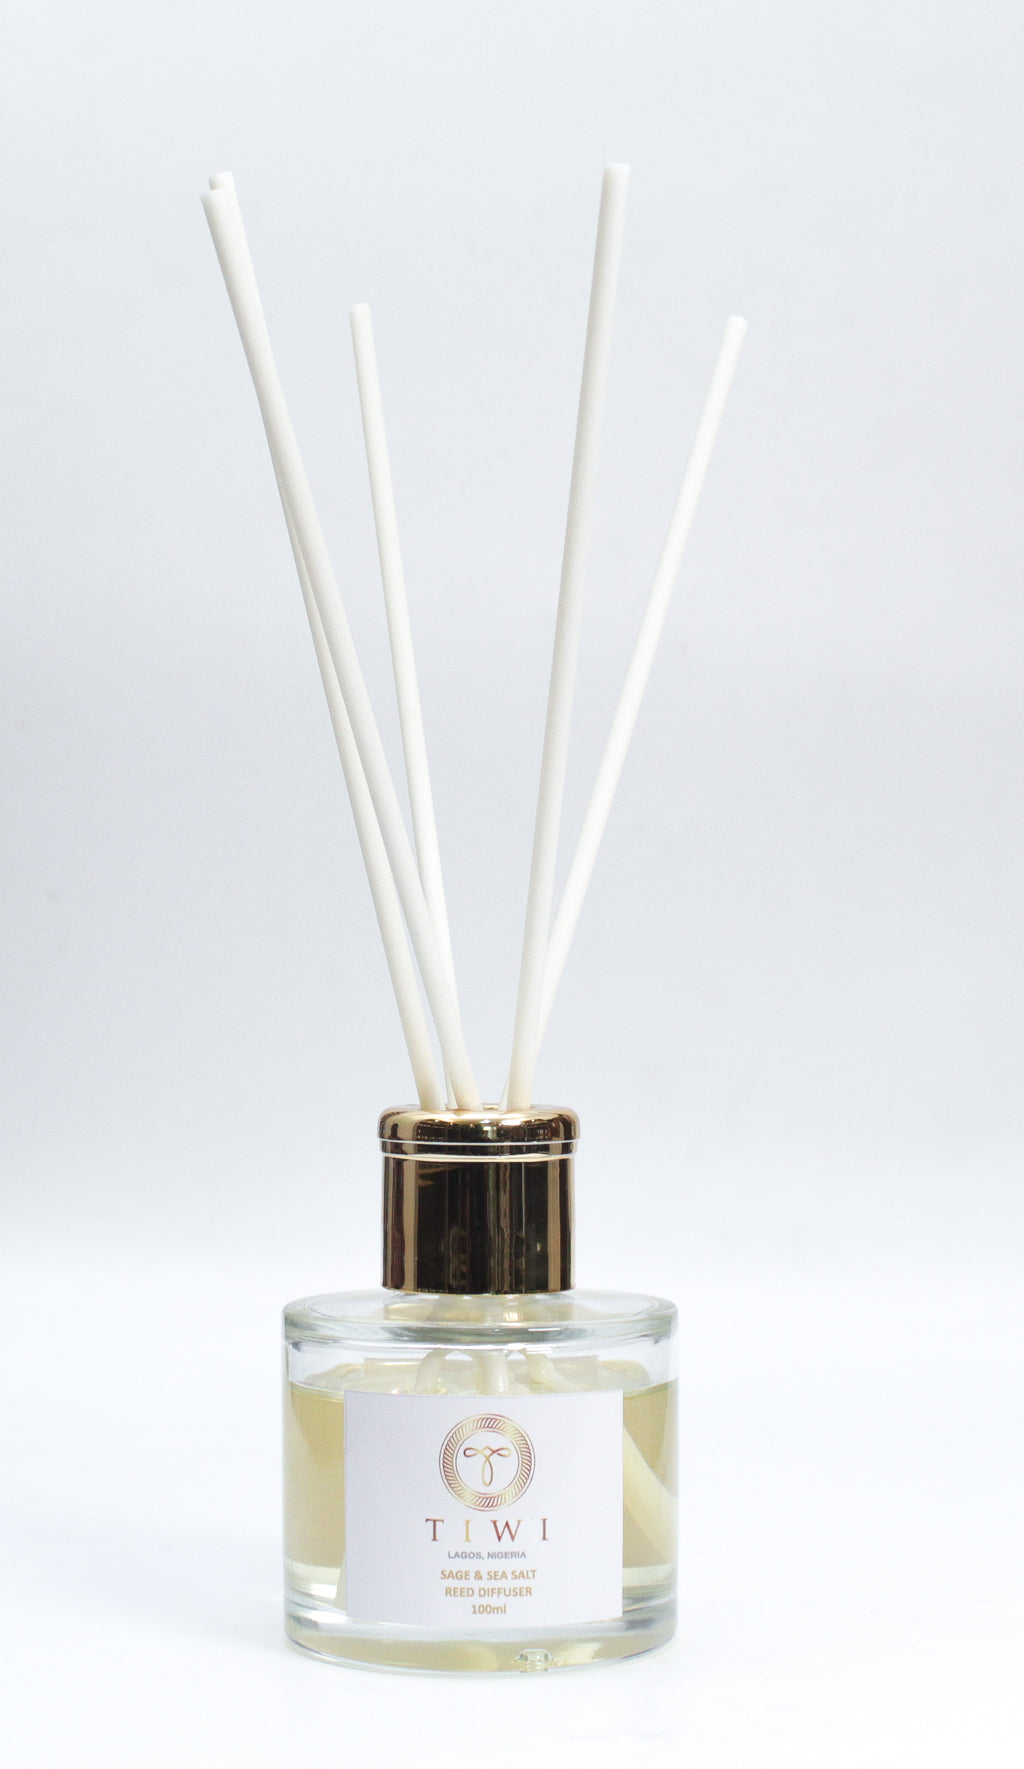 TIWI Sea Salt & Orchids Reed Diffuser - TIWI Home Fragrance